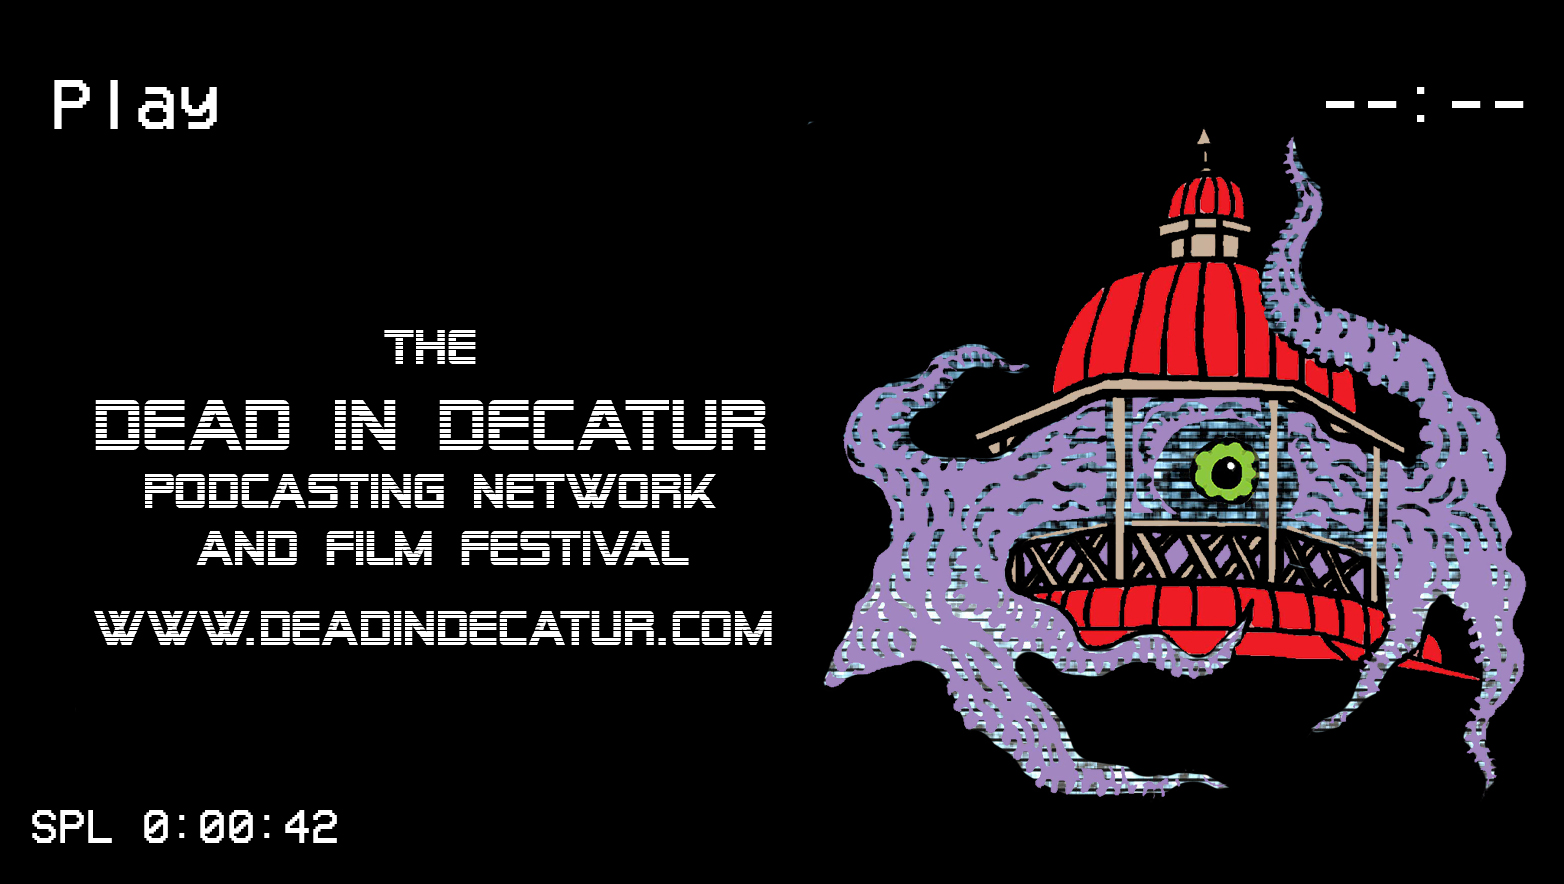 Help Support Indie Genre Films With The Creation Of 'The Dead in Decatur International Film Festival'